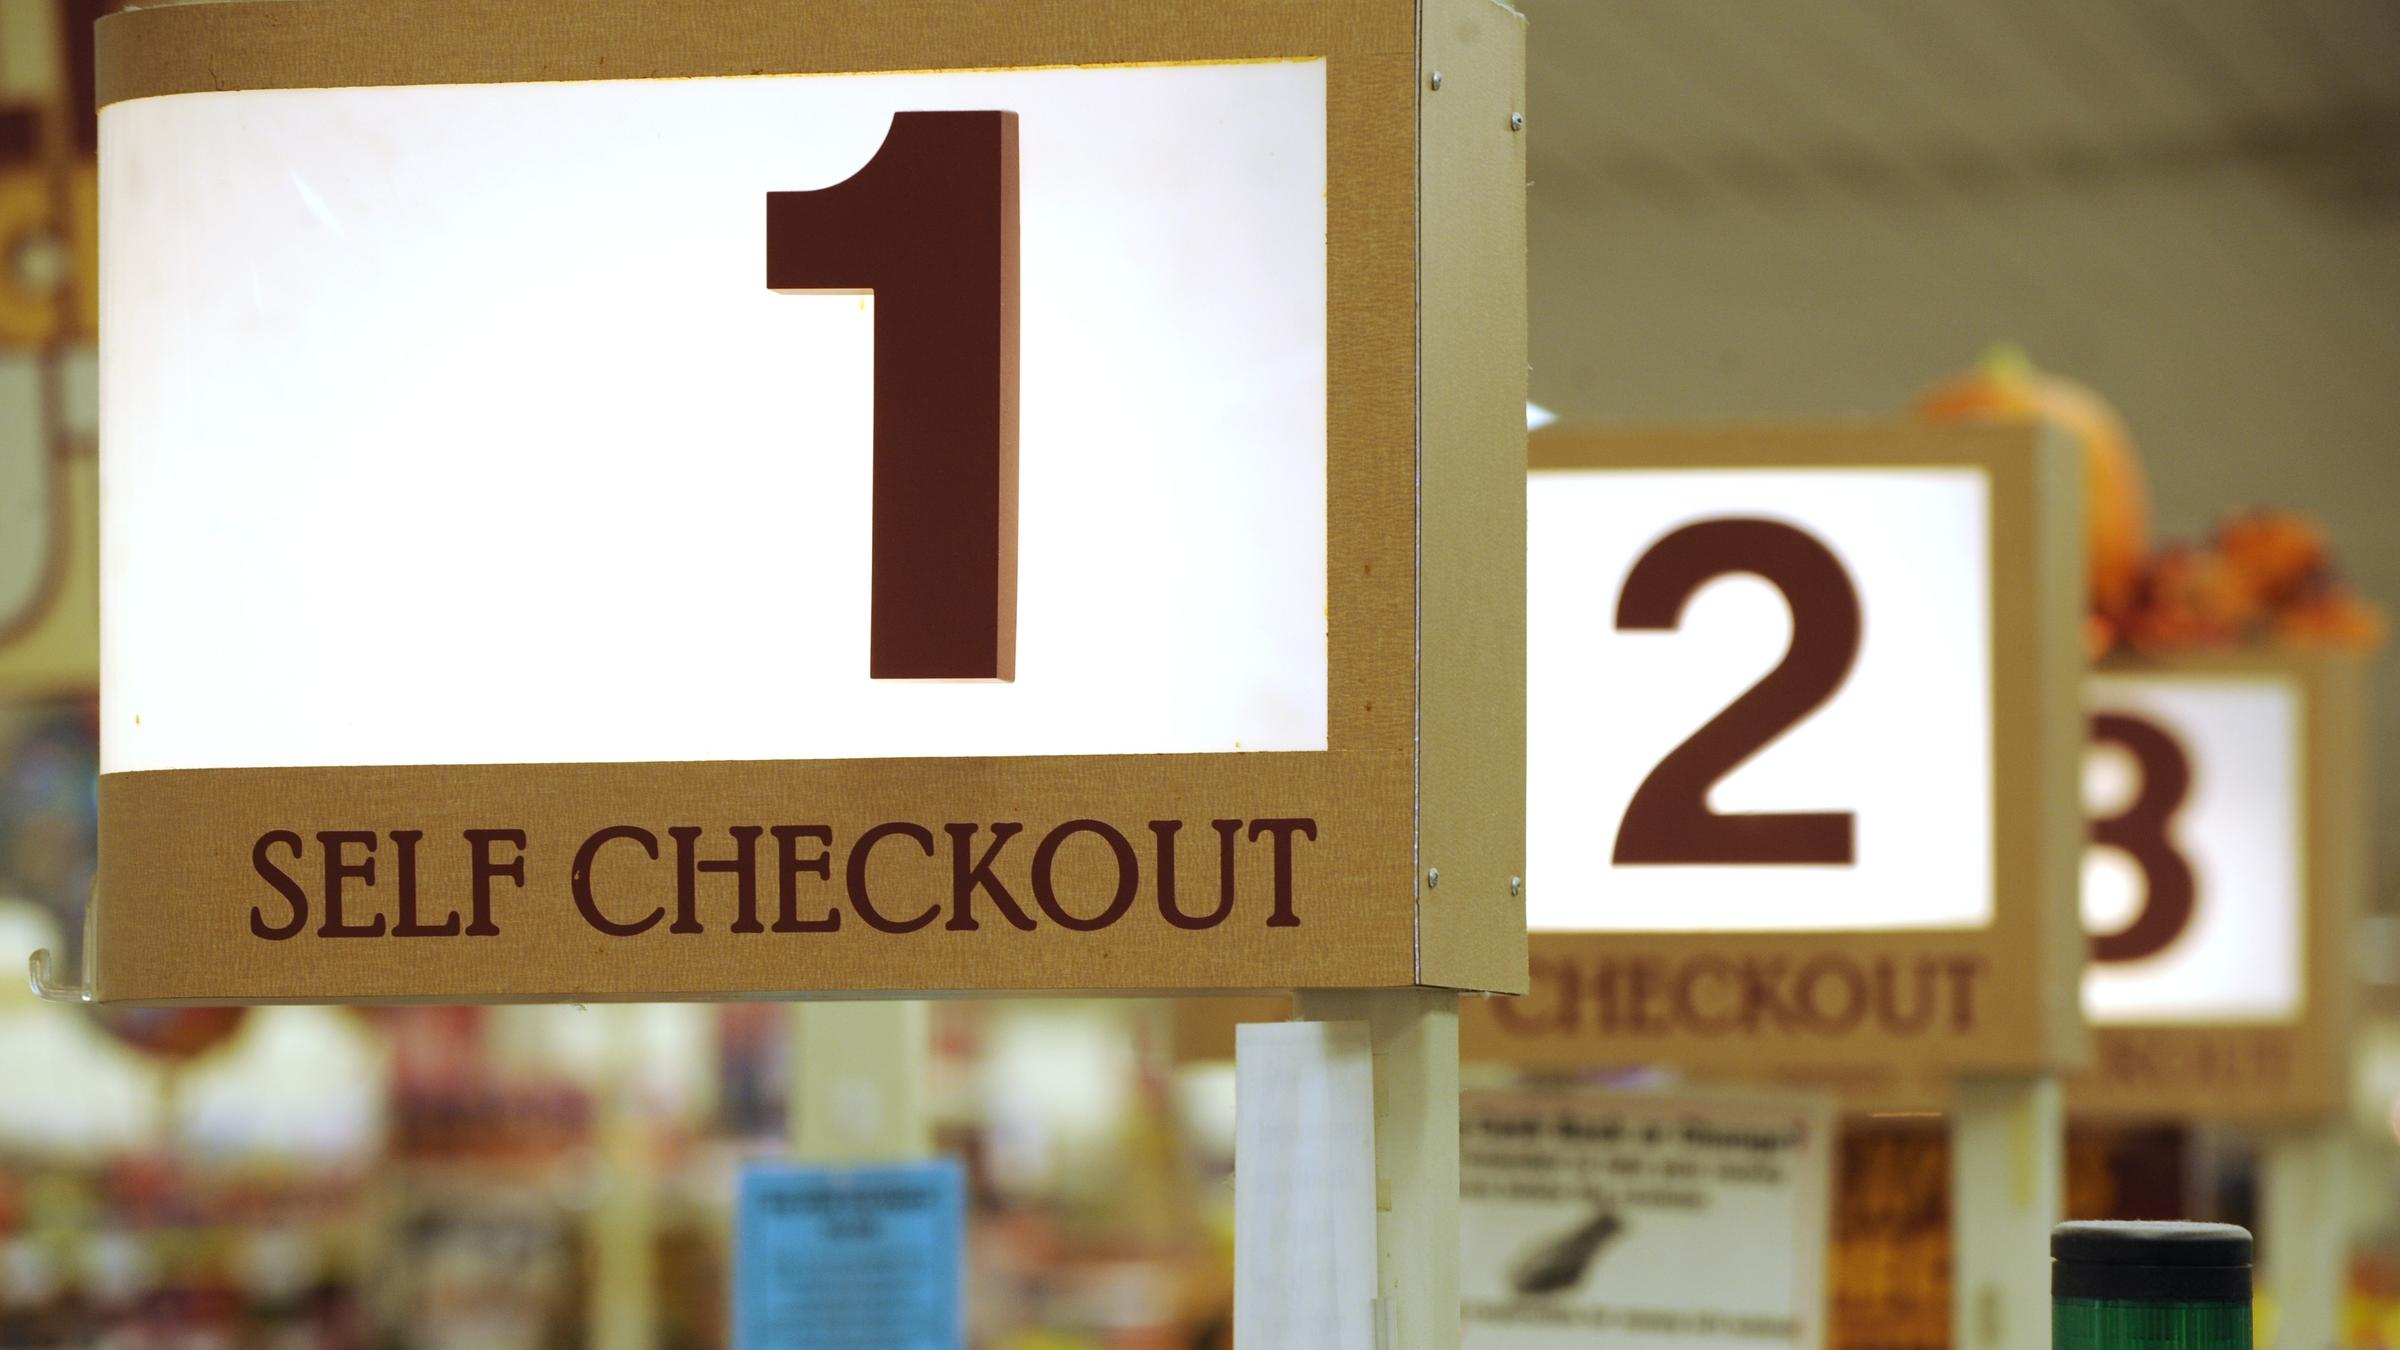 Naughty Or Nice? Retailers Use Smiles To Fight Self-Checkout